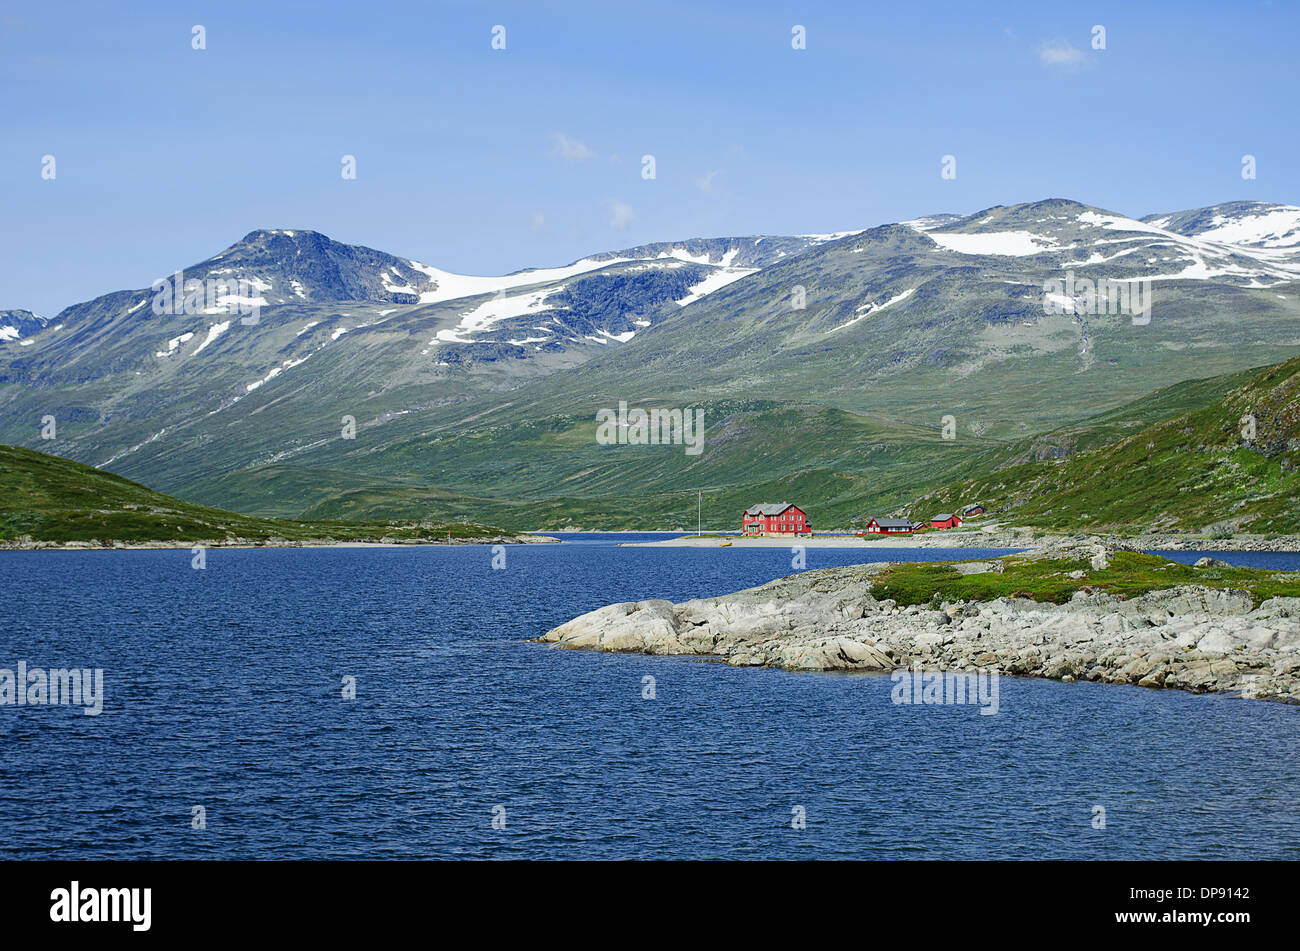 A lodge in Jotunheimen National Park in Norway at lake Bygdin. - Stock Image